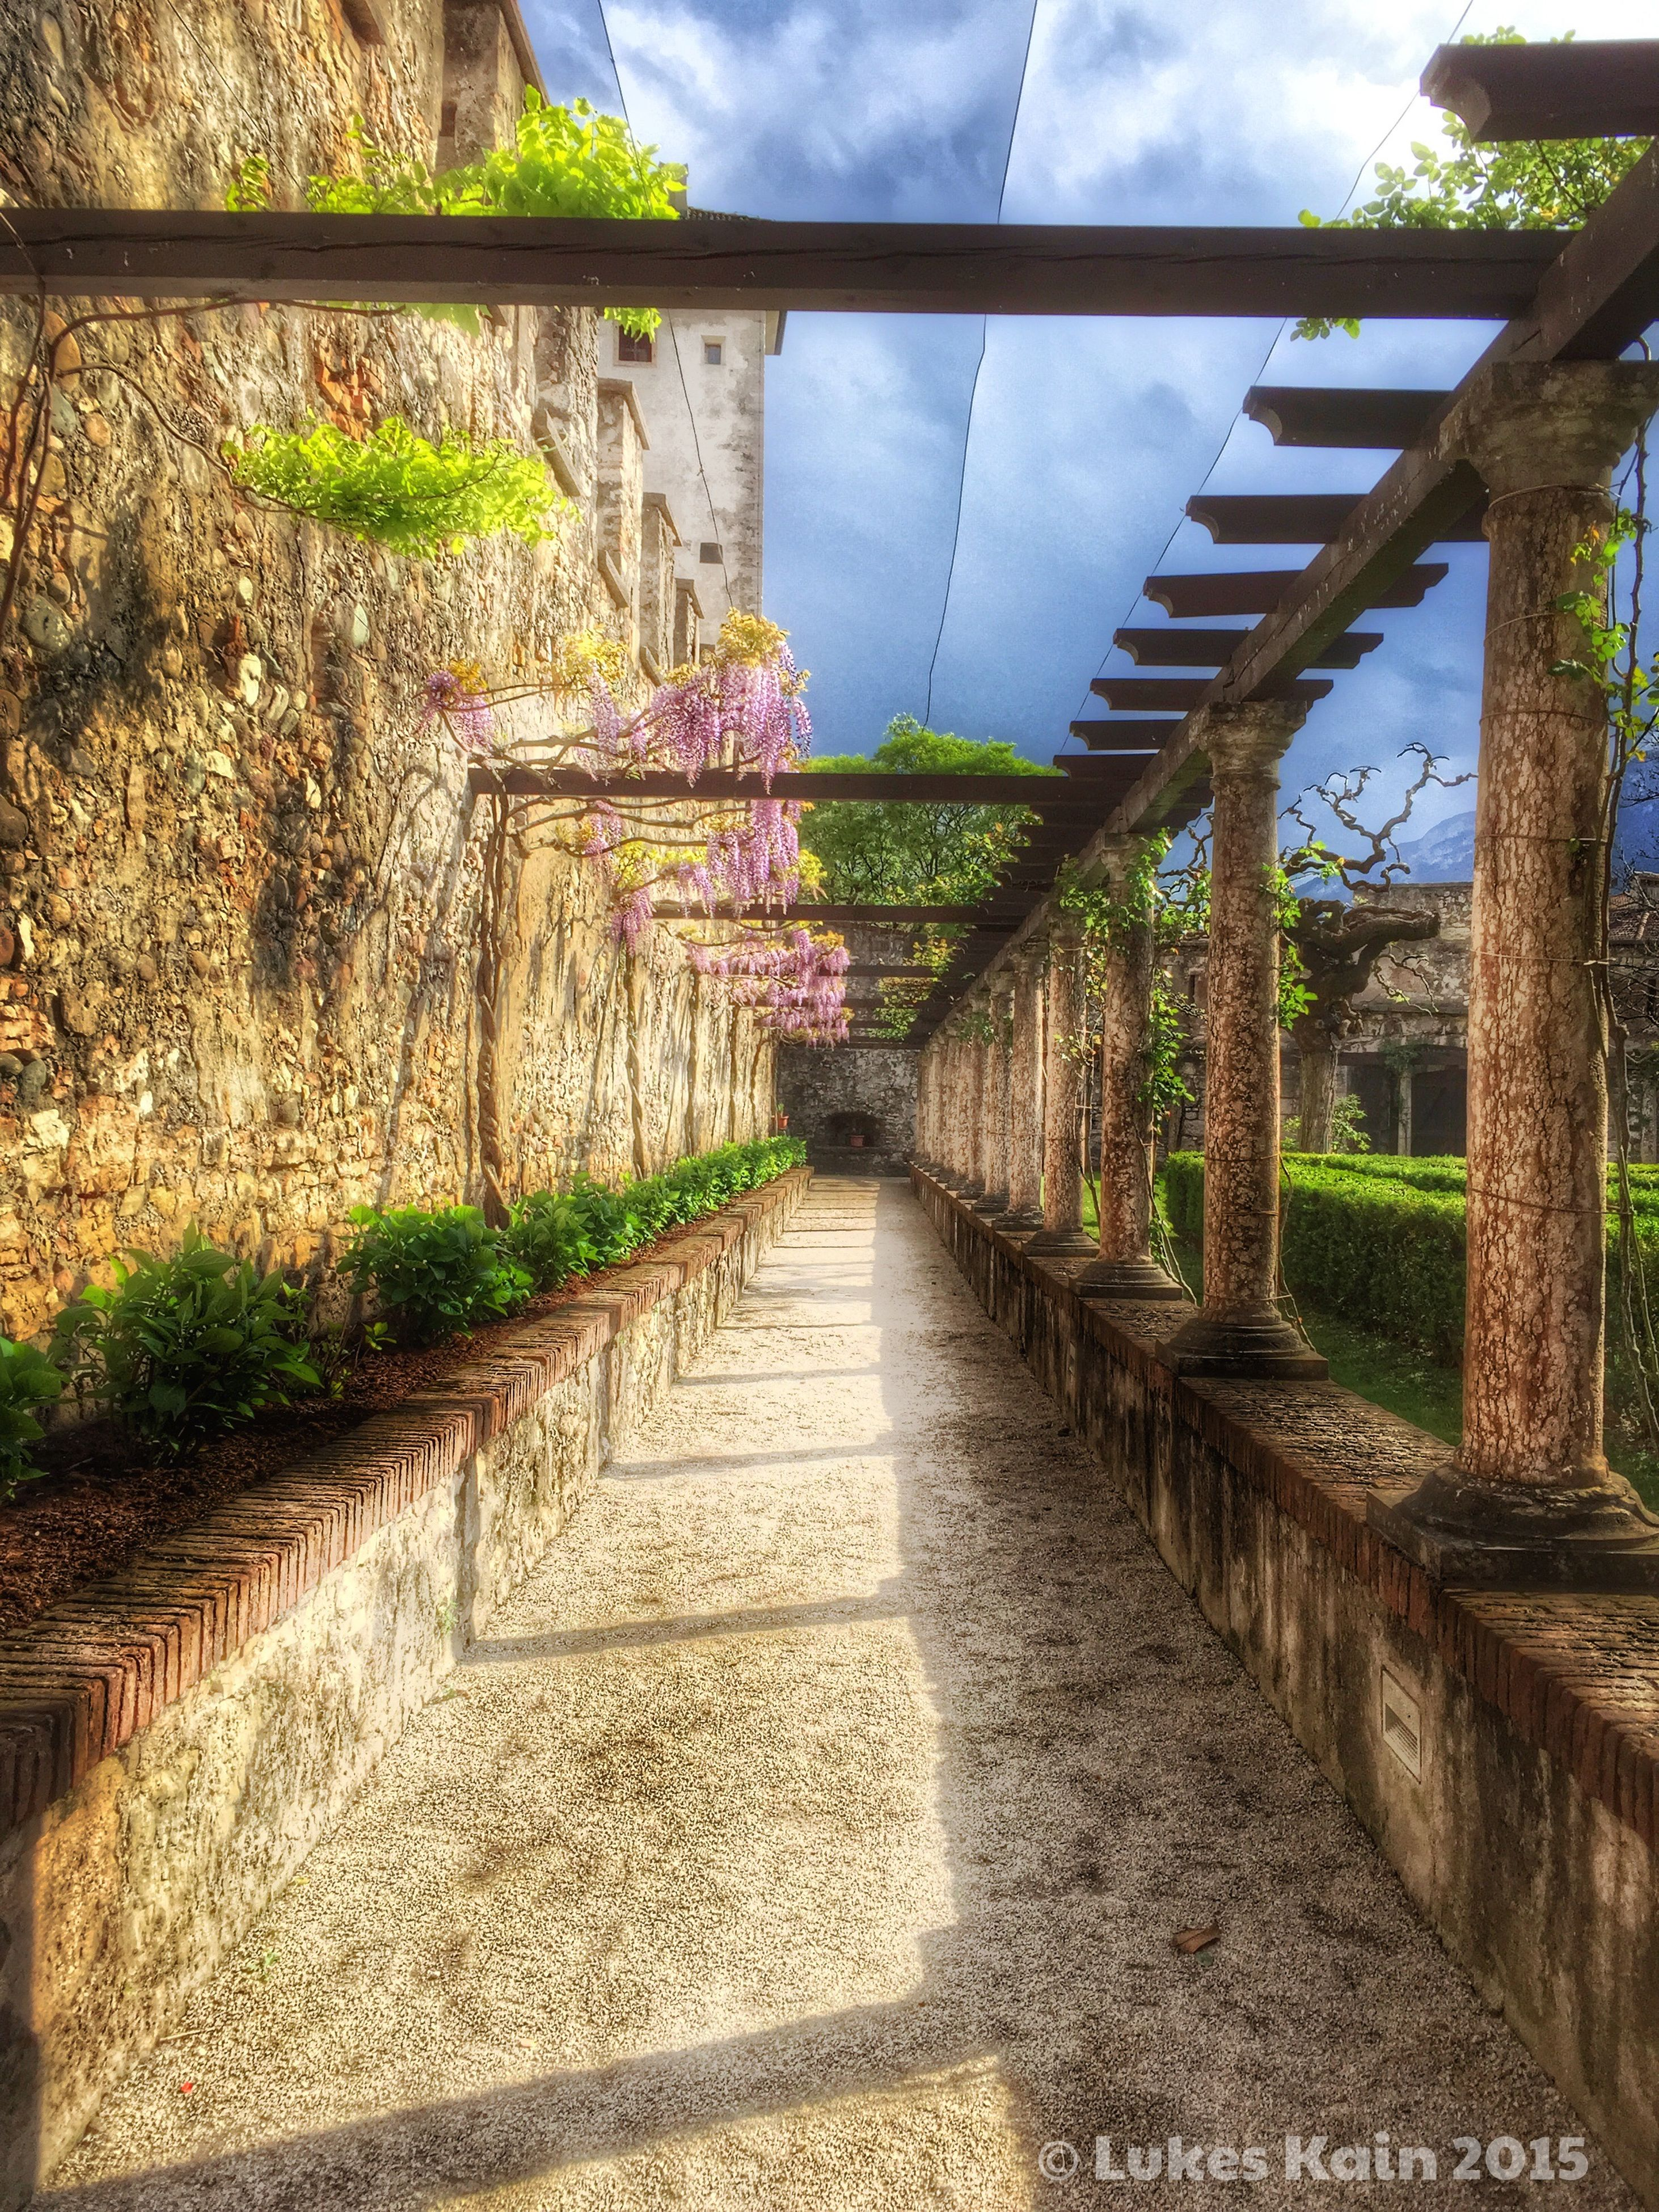 architecture, built structure, the way forward, diminishing perspective, sky, stone wall, plant, building exterior, connection, narrow, walkway, vanishing point, day, wall - building feature, arch, leading, no people, footpath, growth, tree